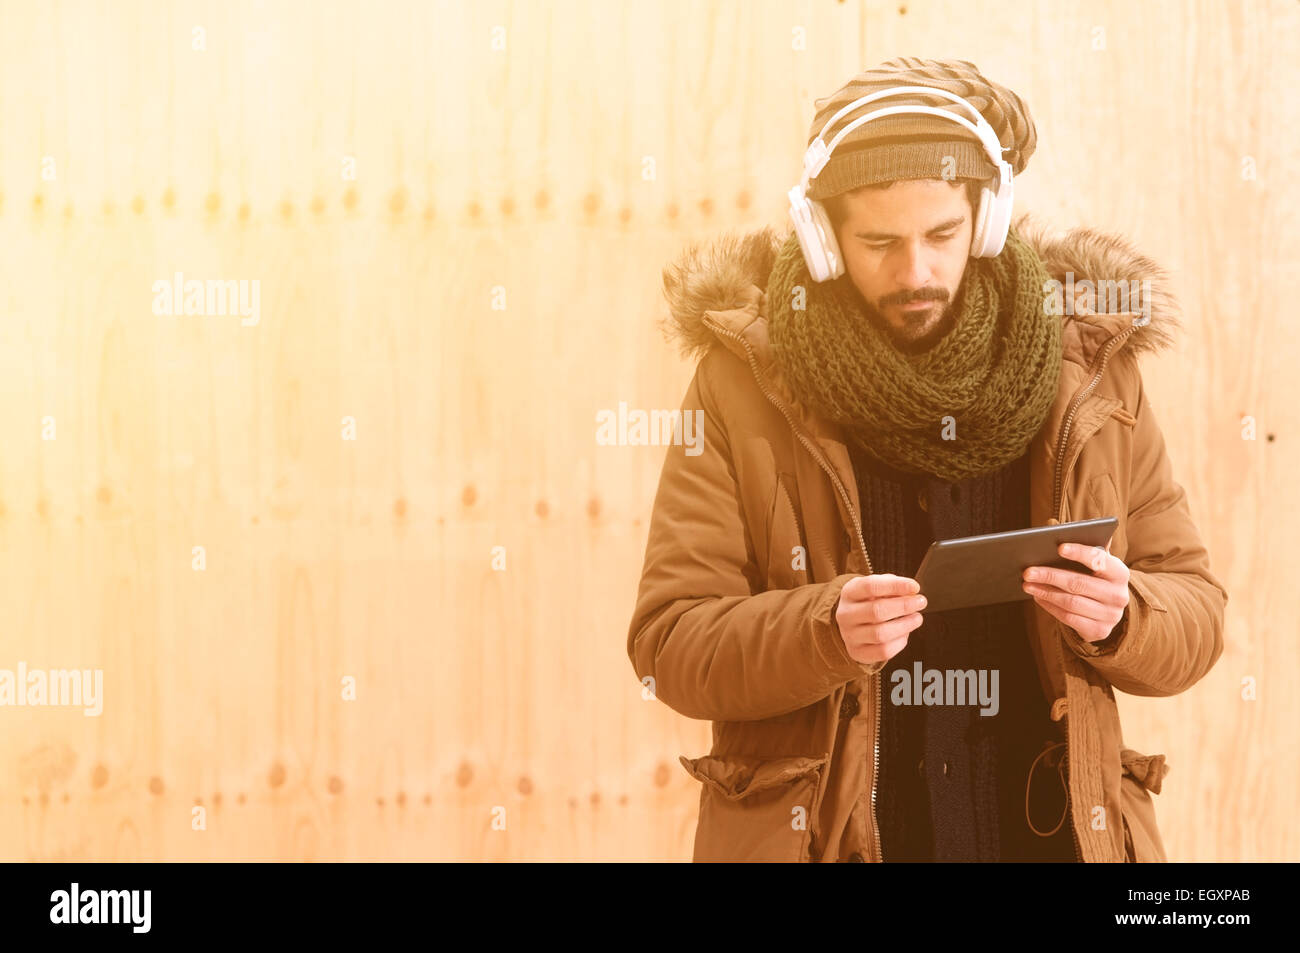 a young man listens to music in an urban image of modern life istagram style toned Stock Photo